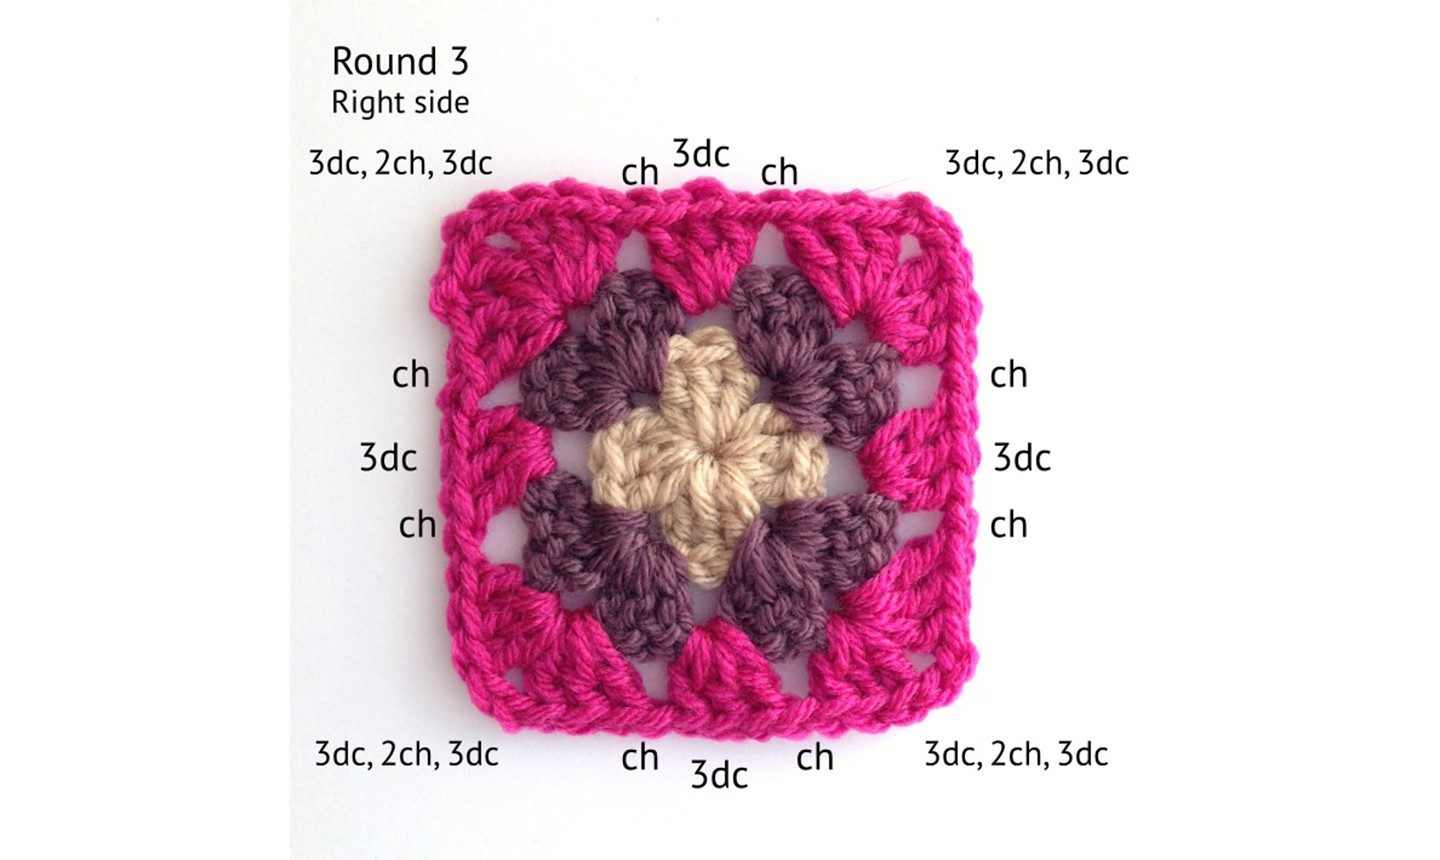 How To Read Crochet Patterns In Rounds